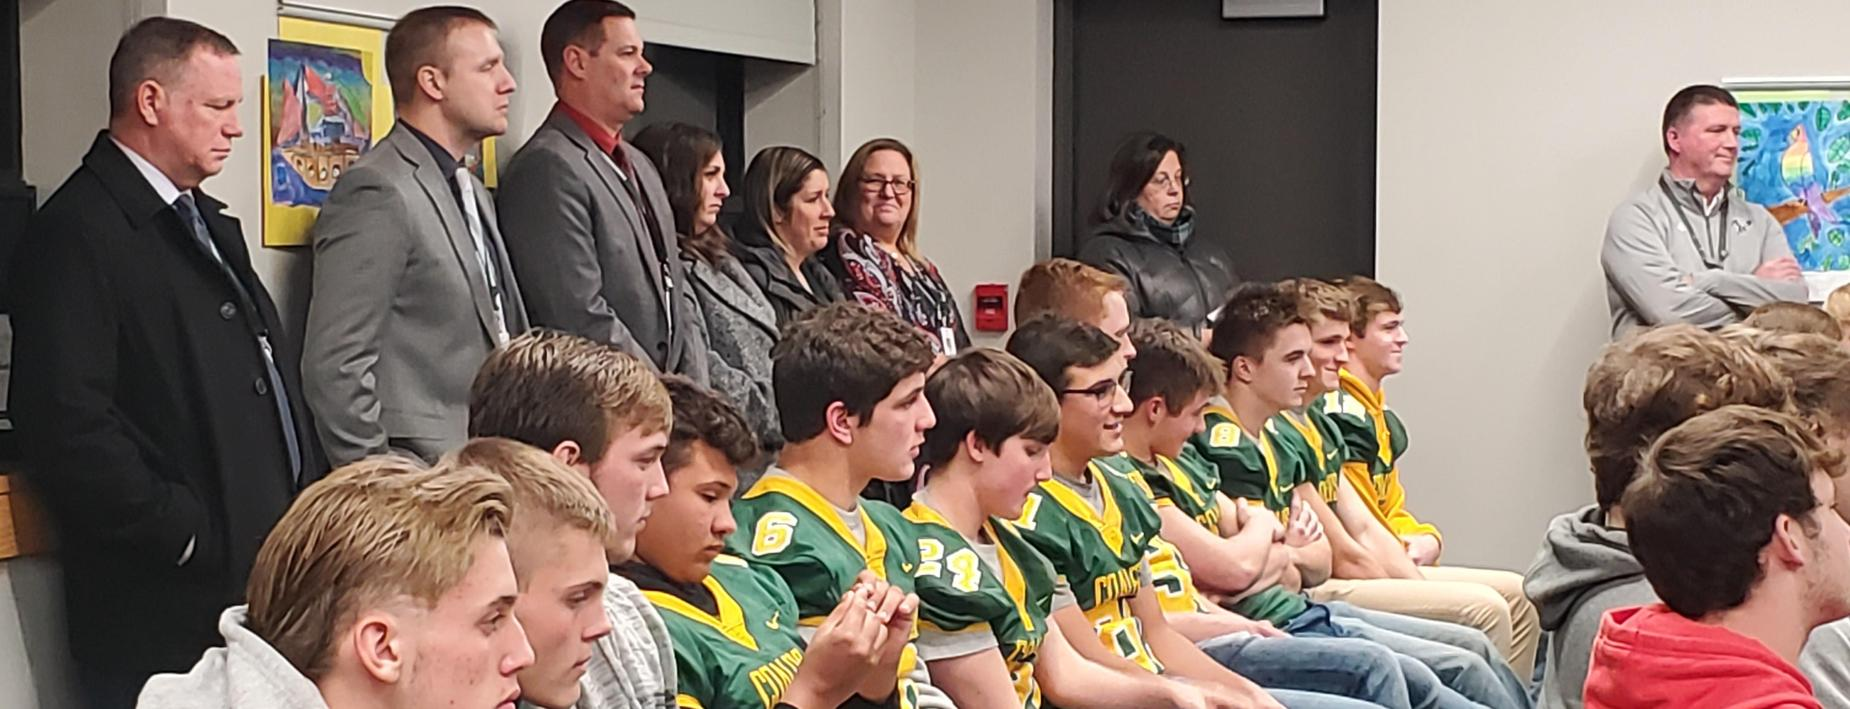 Honoring the football team at the board meeting